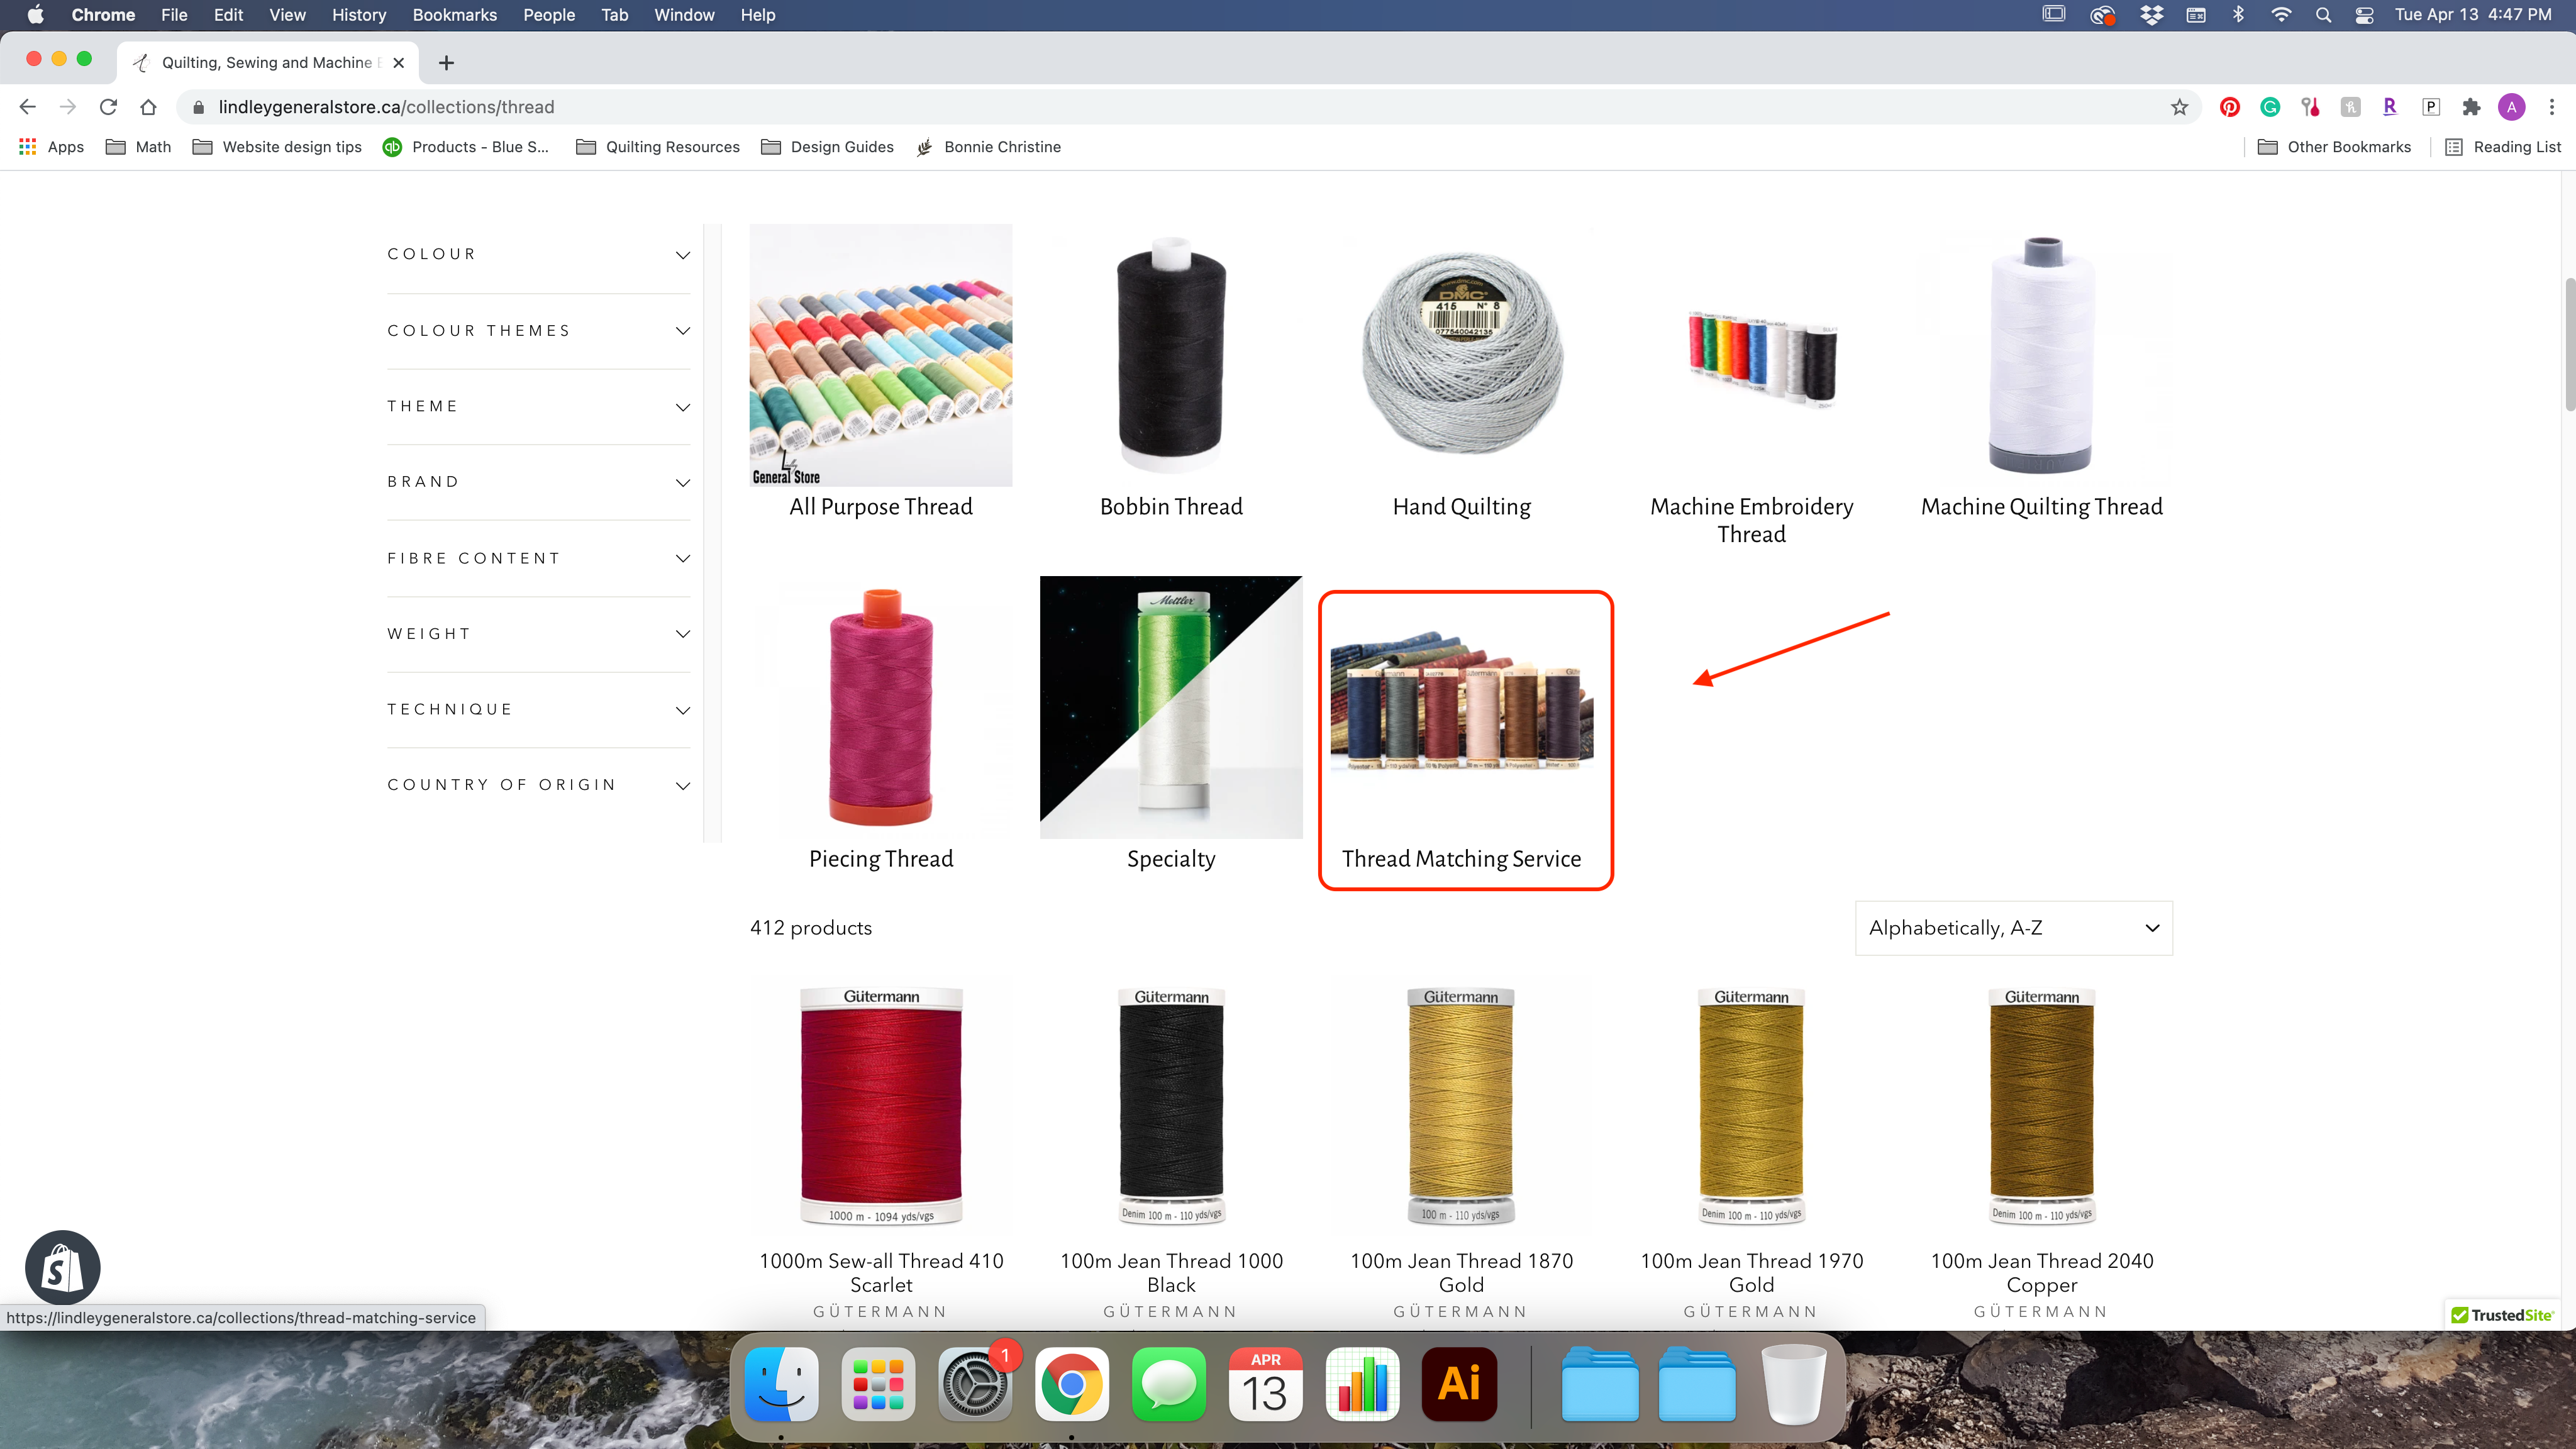 Machine Sewing Thread collection